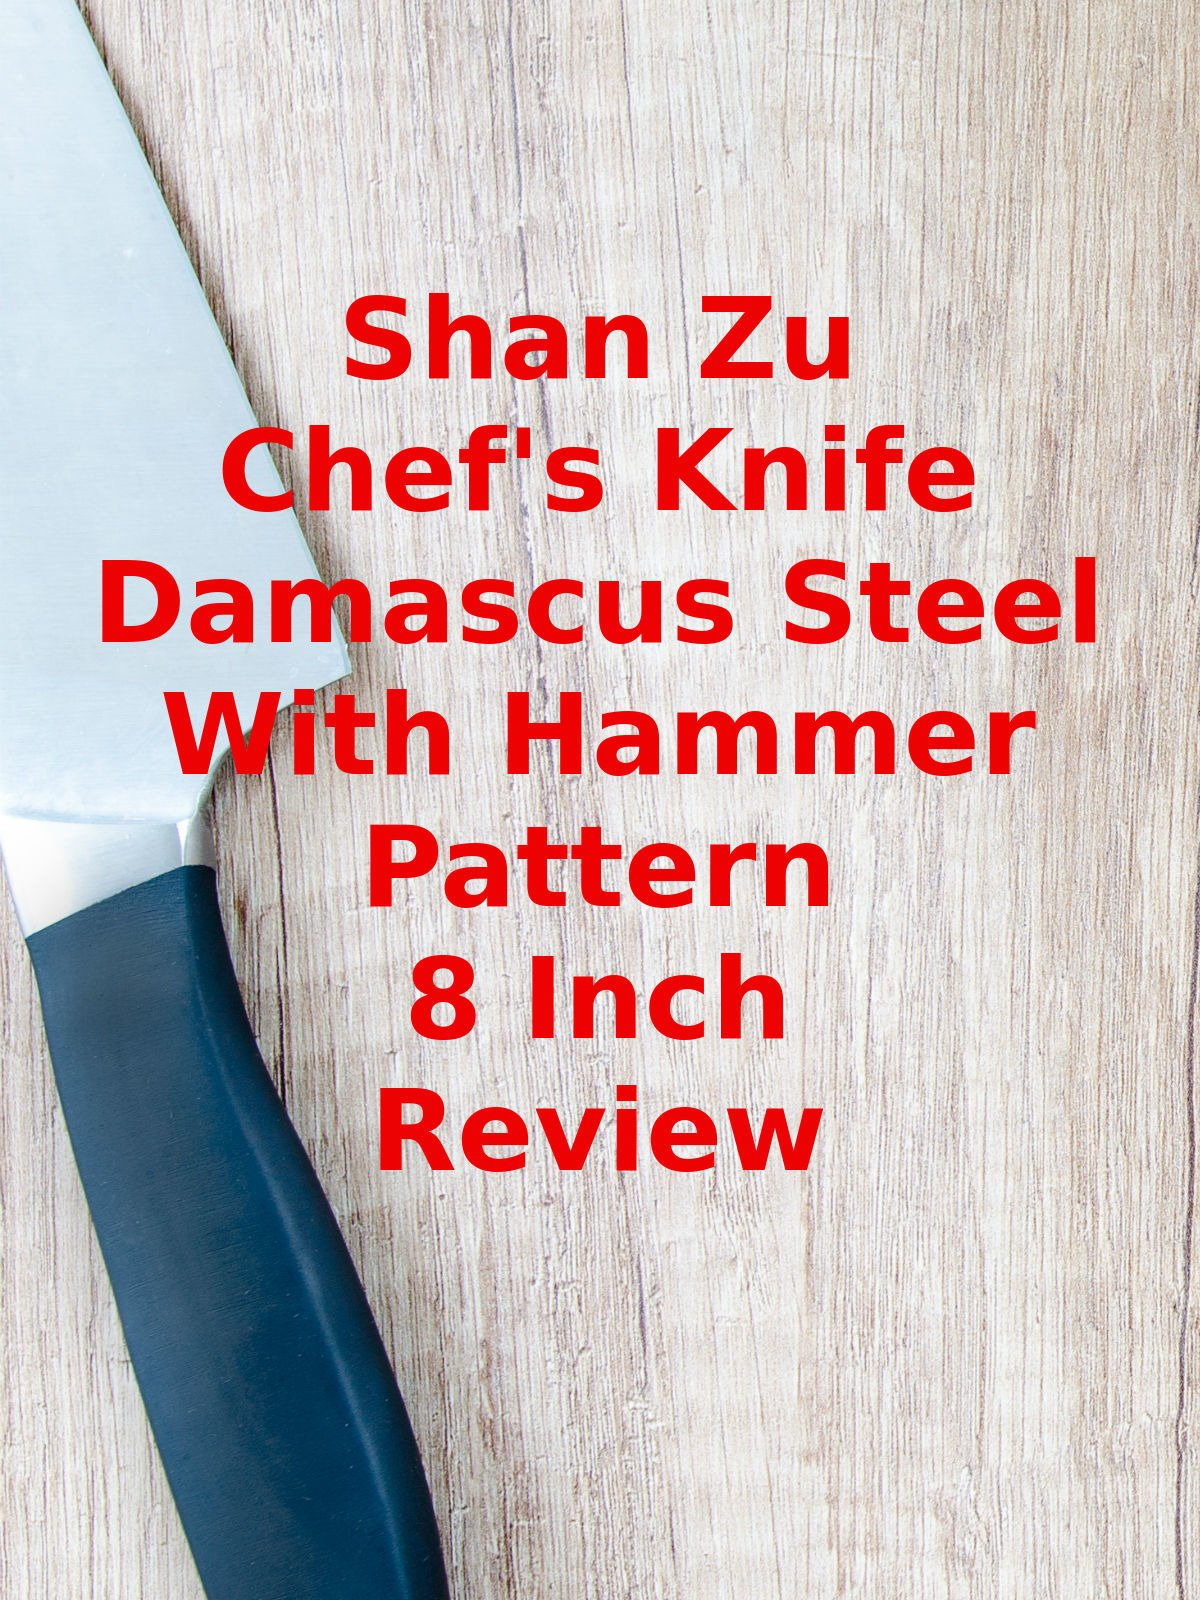 Review: Shan Zu Chef's Knife Damascus Steel With Hammer Pattern 8 Inch Review